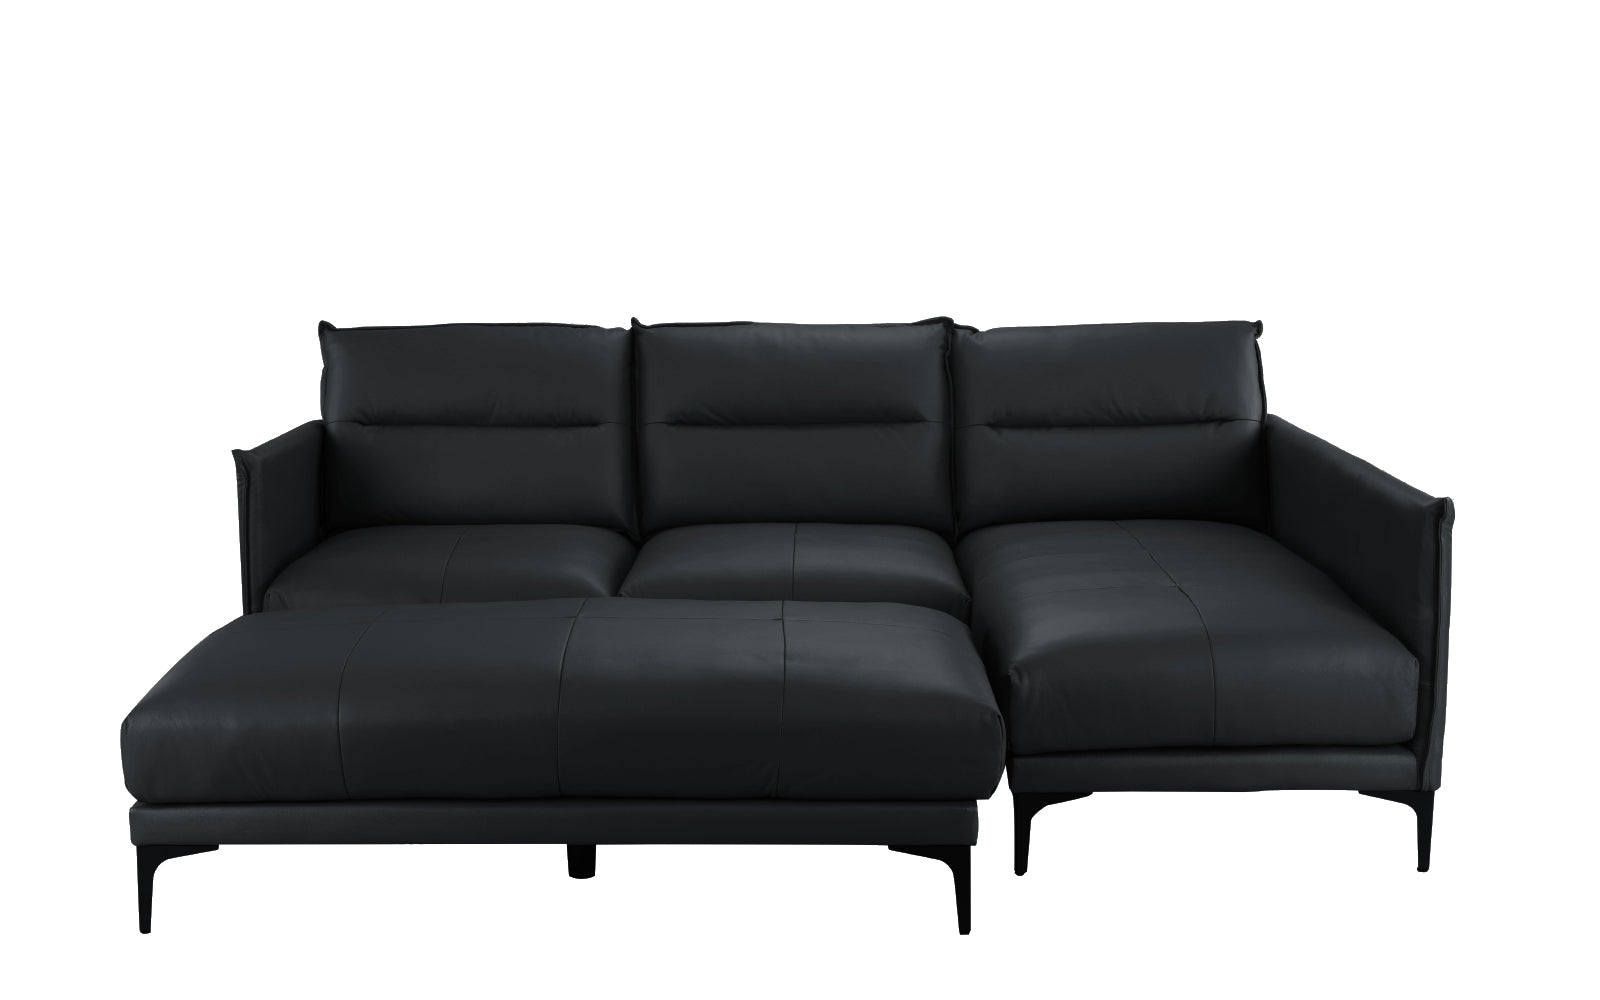 Leather Sectional Ottoman Image